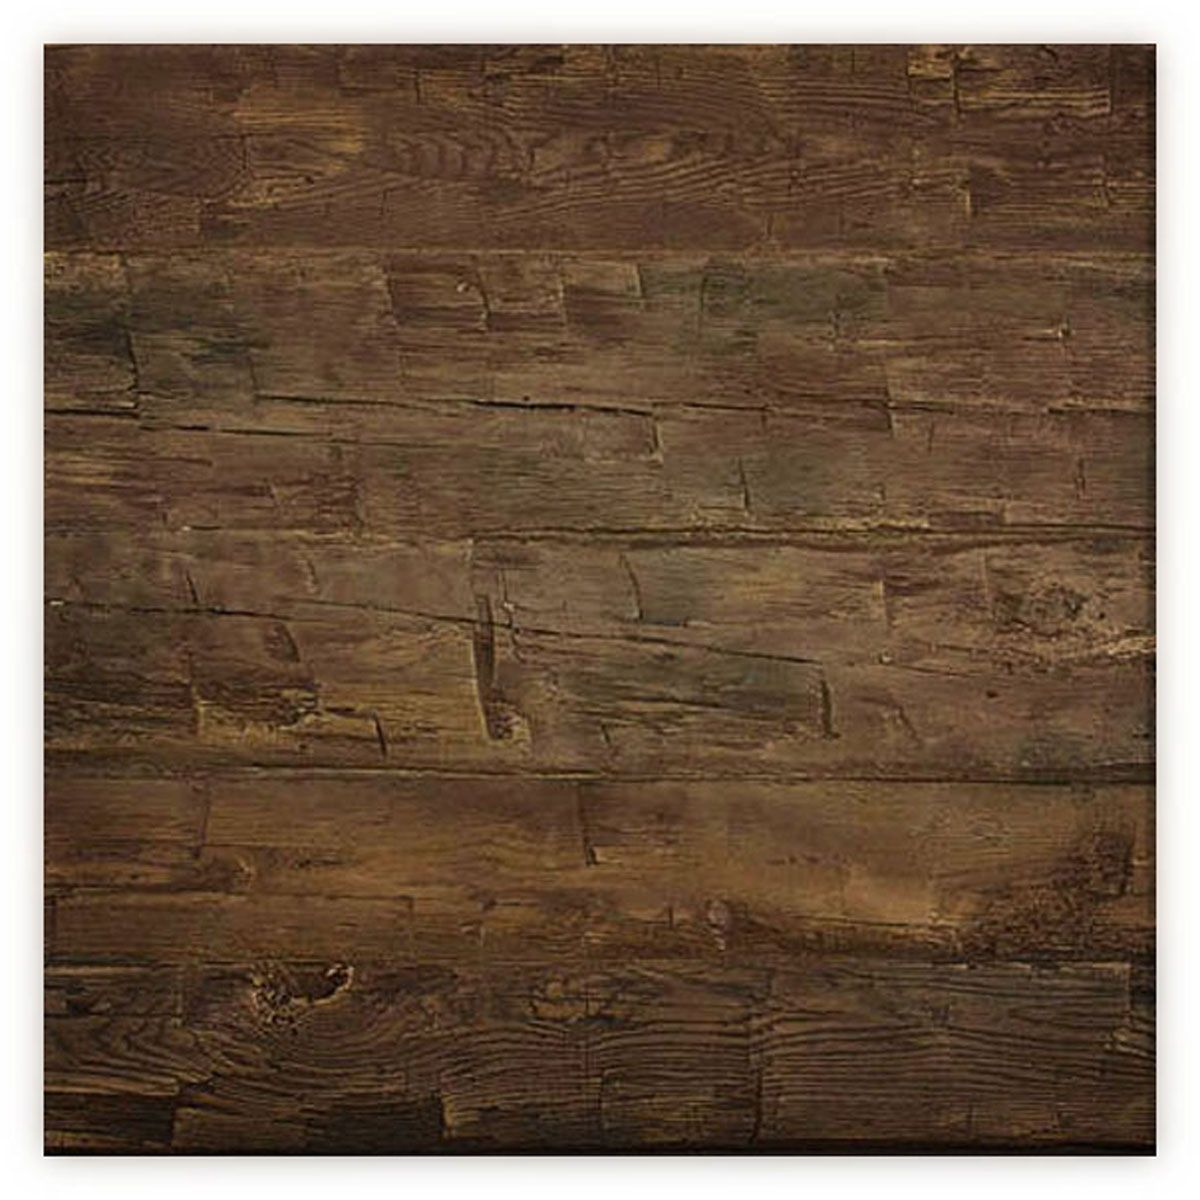 8 Inch W X 10 Inch H Hand Hewn Endurathane Faux Wood Siding Panel Sample Weathered Brown With Images Wood Panel Siding Wood Siding Panel Siding